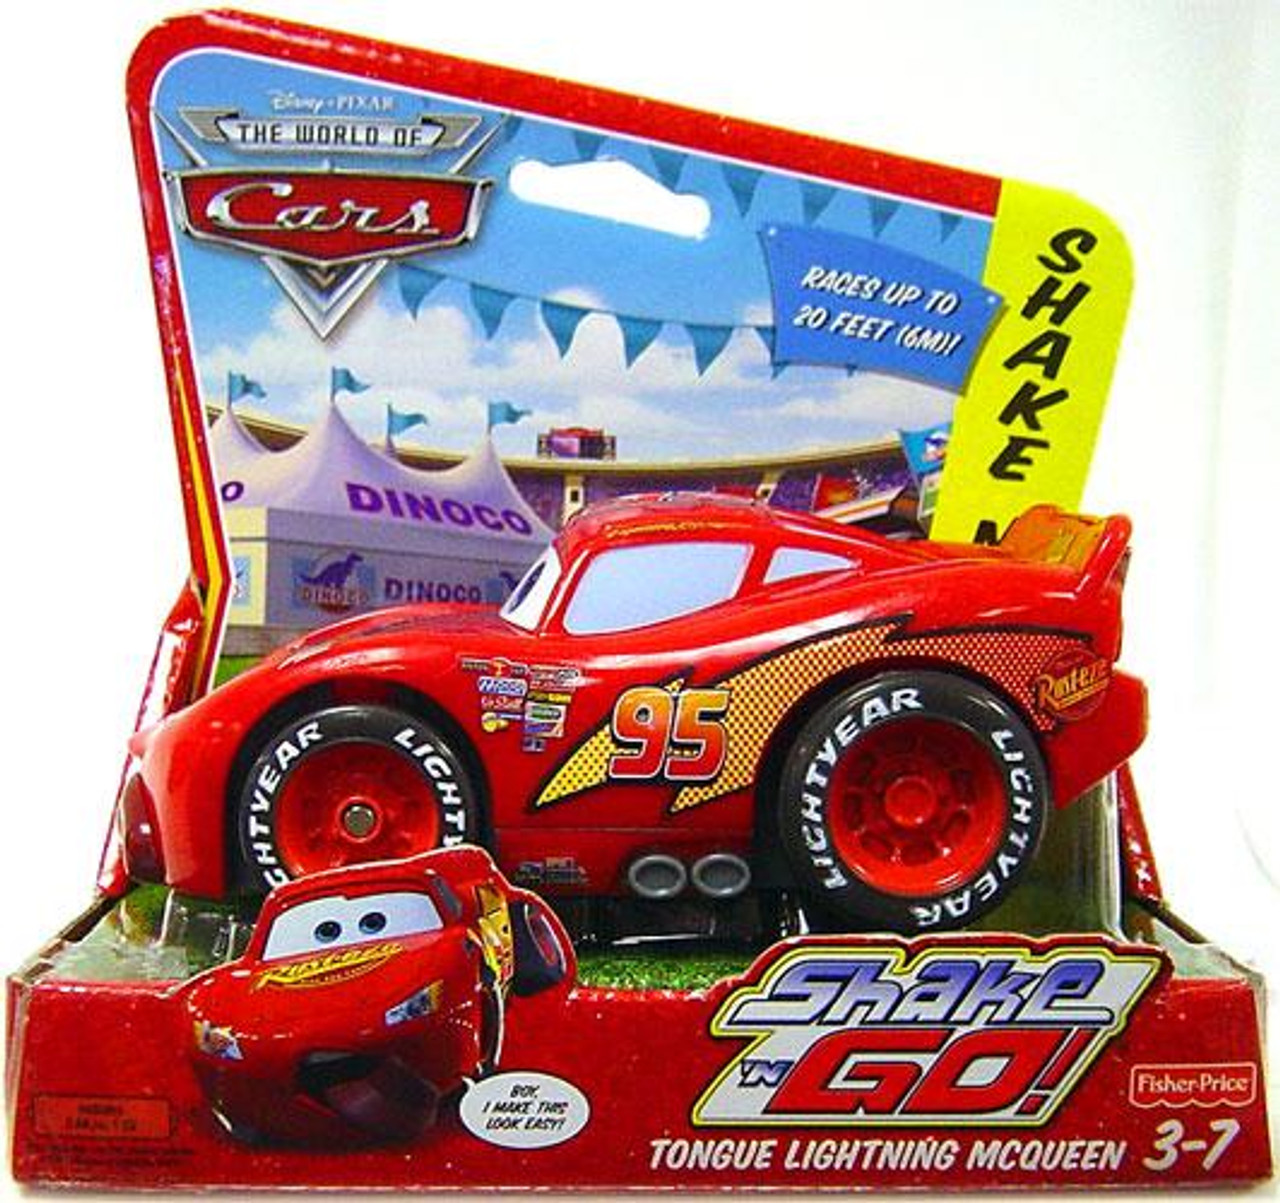 Disney Cars The World of Cars Shake 'N Go Tongue Lightning McQueen Shake 'N Go Car